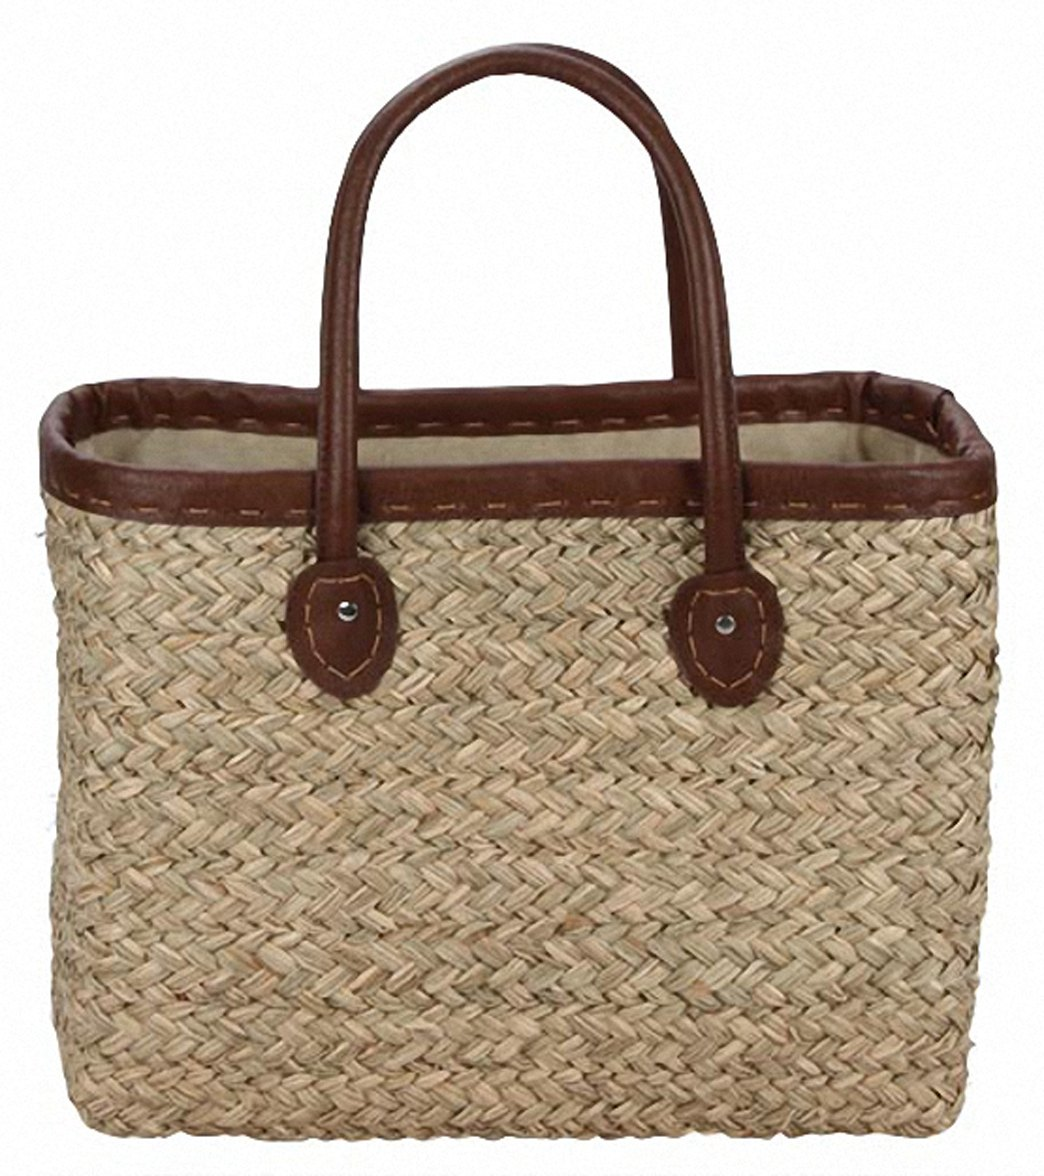 Sun N Sand Woodland Hue Straw Square Tote Beach Bag at SwimOutlet.com